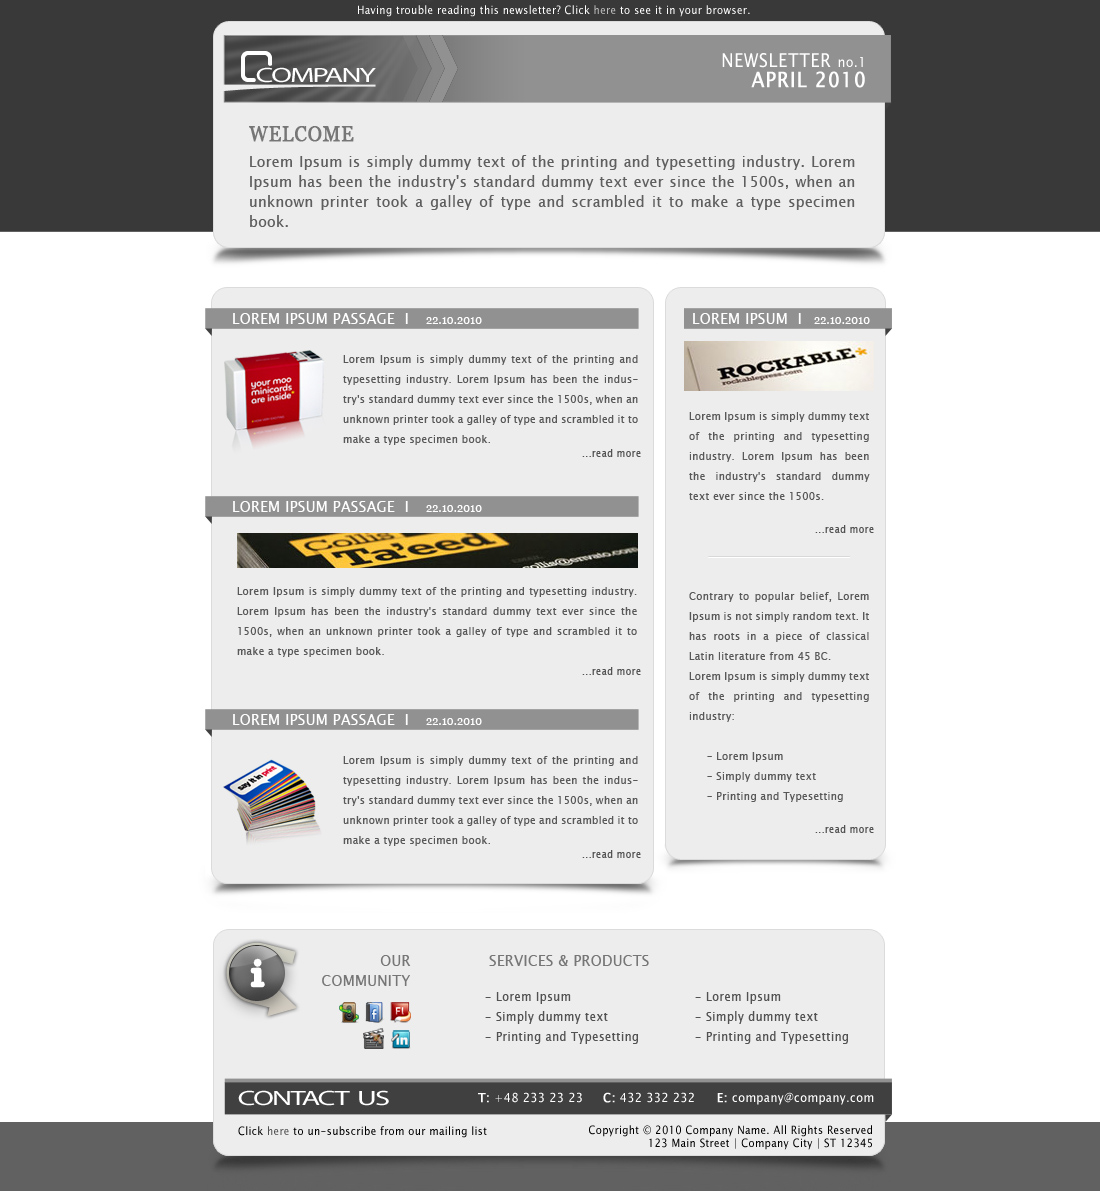 Company Newsletter - Email Template